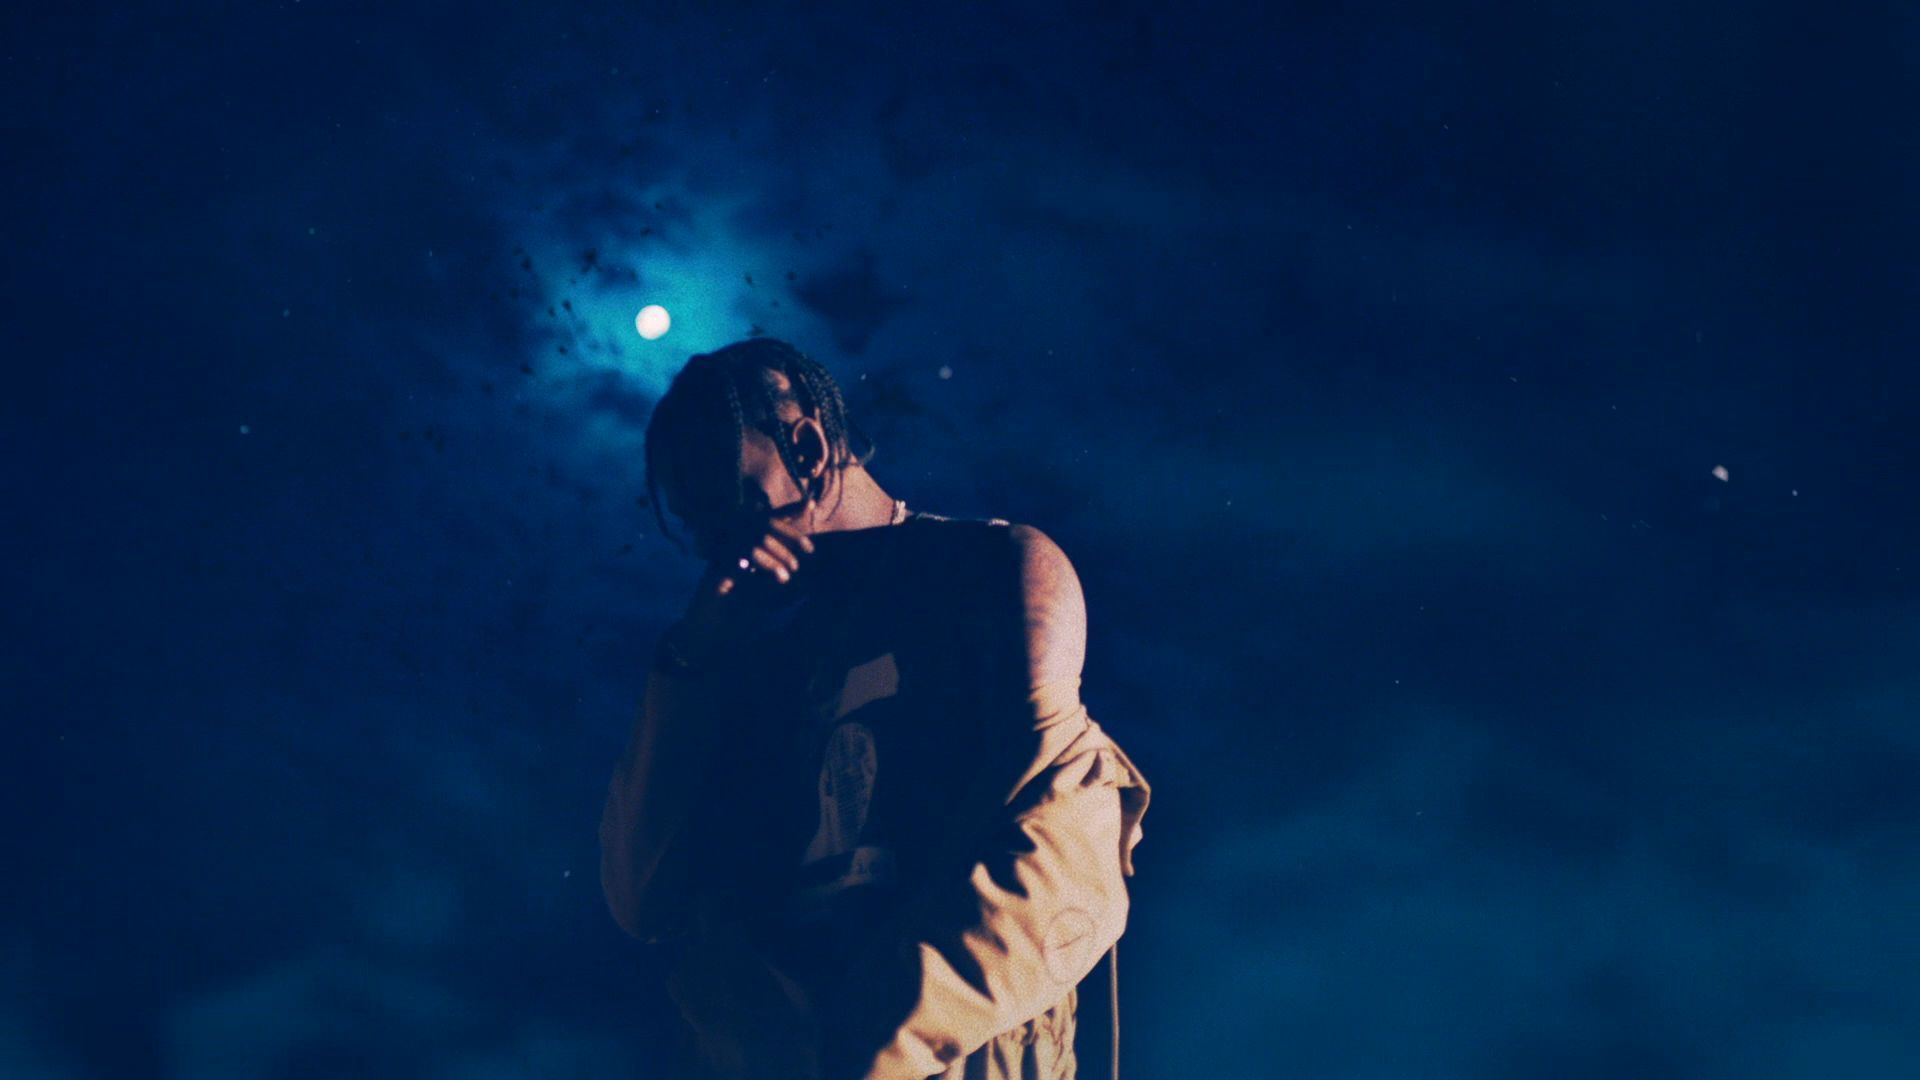 Travis Scott Aesthetic Wallpapers Top Free Travis Scott Aesthetic Backgrounds Wallpaperaccess